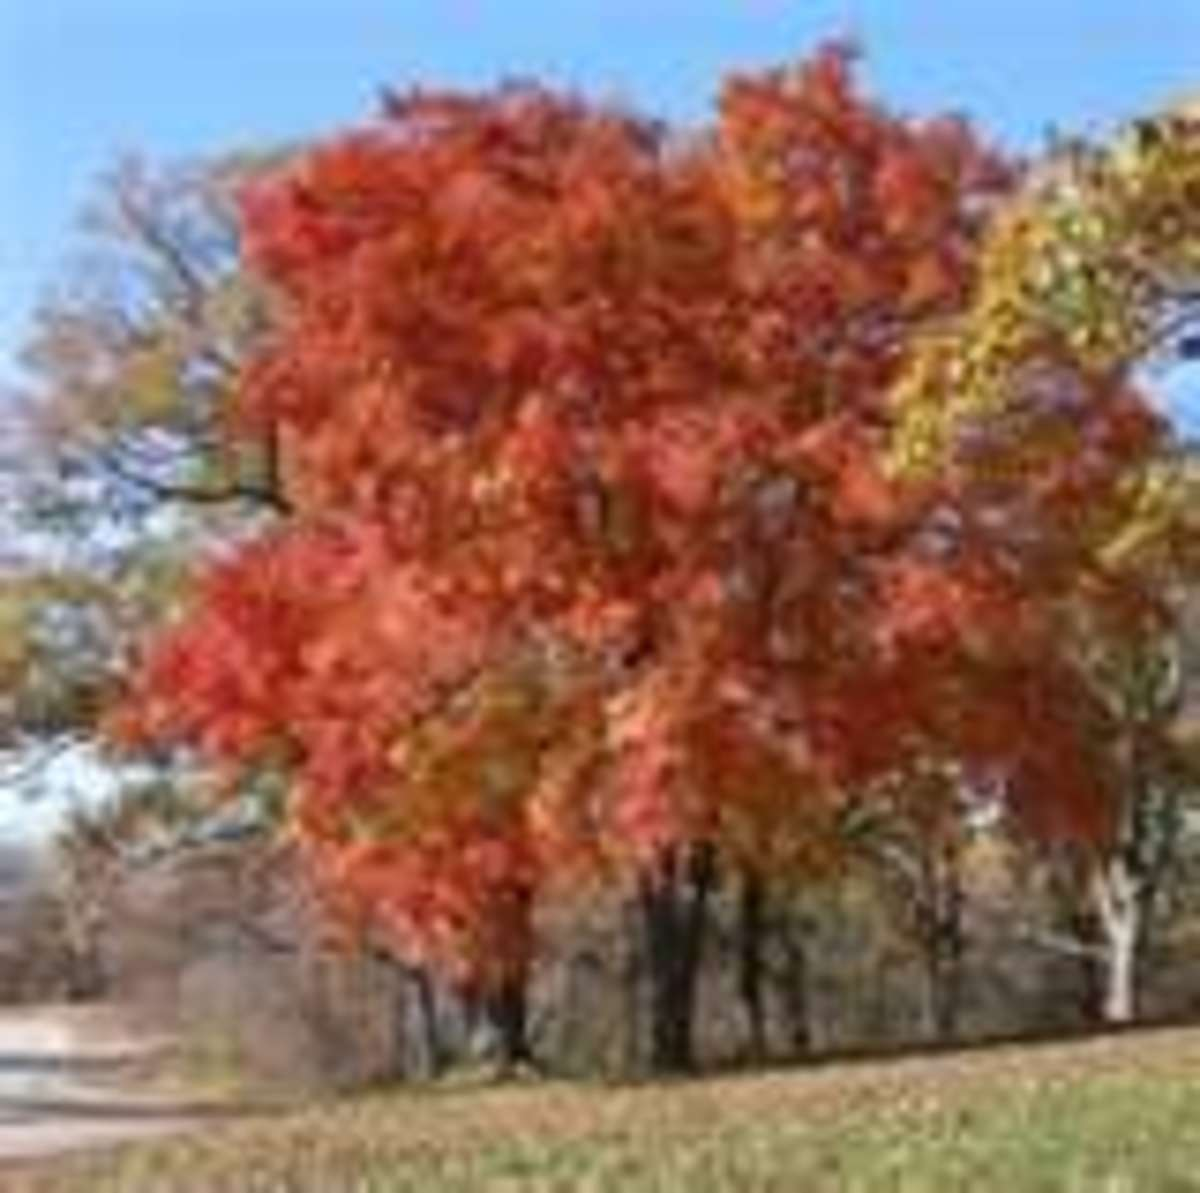 Autumn shares beautifully festive colors in the fall - and at times in our life seasons too. Autumn can give us such exciting music when we listen.